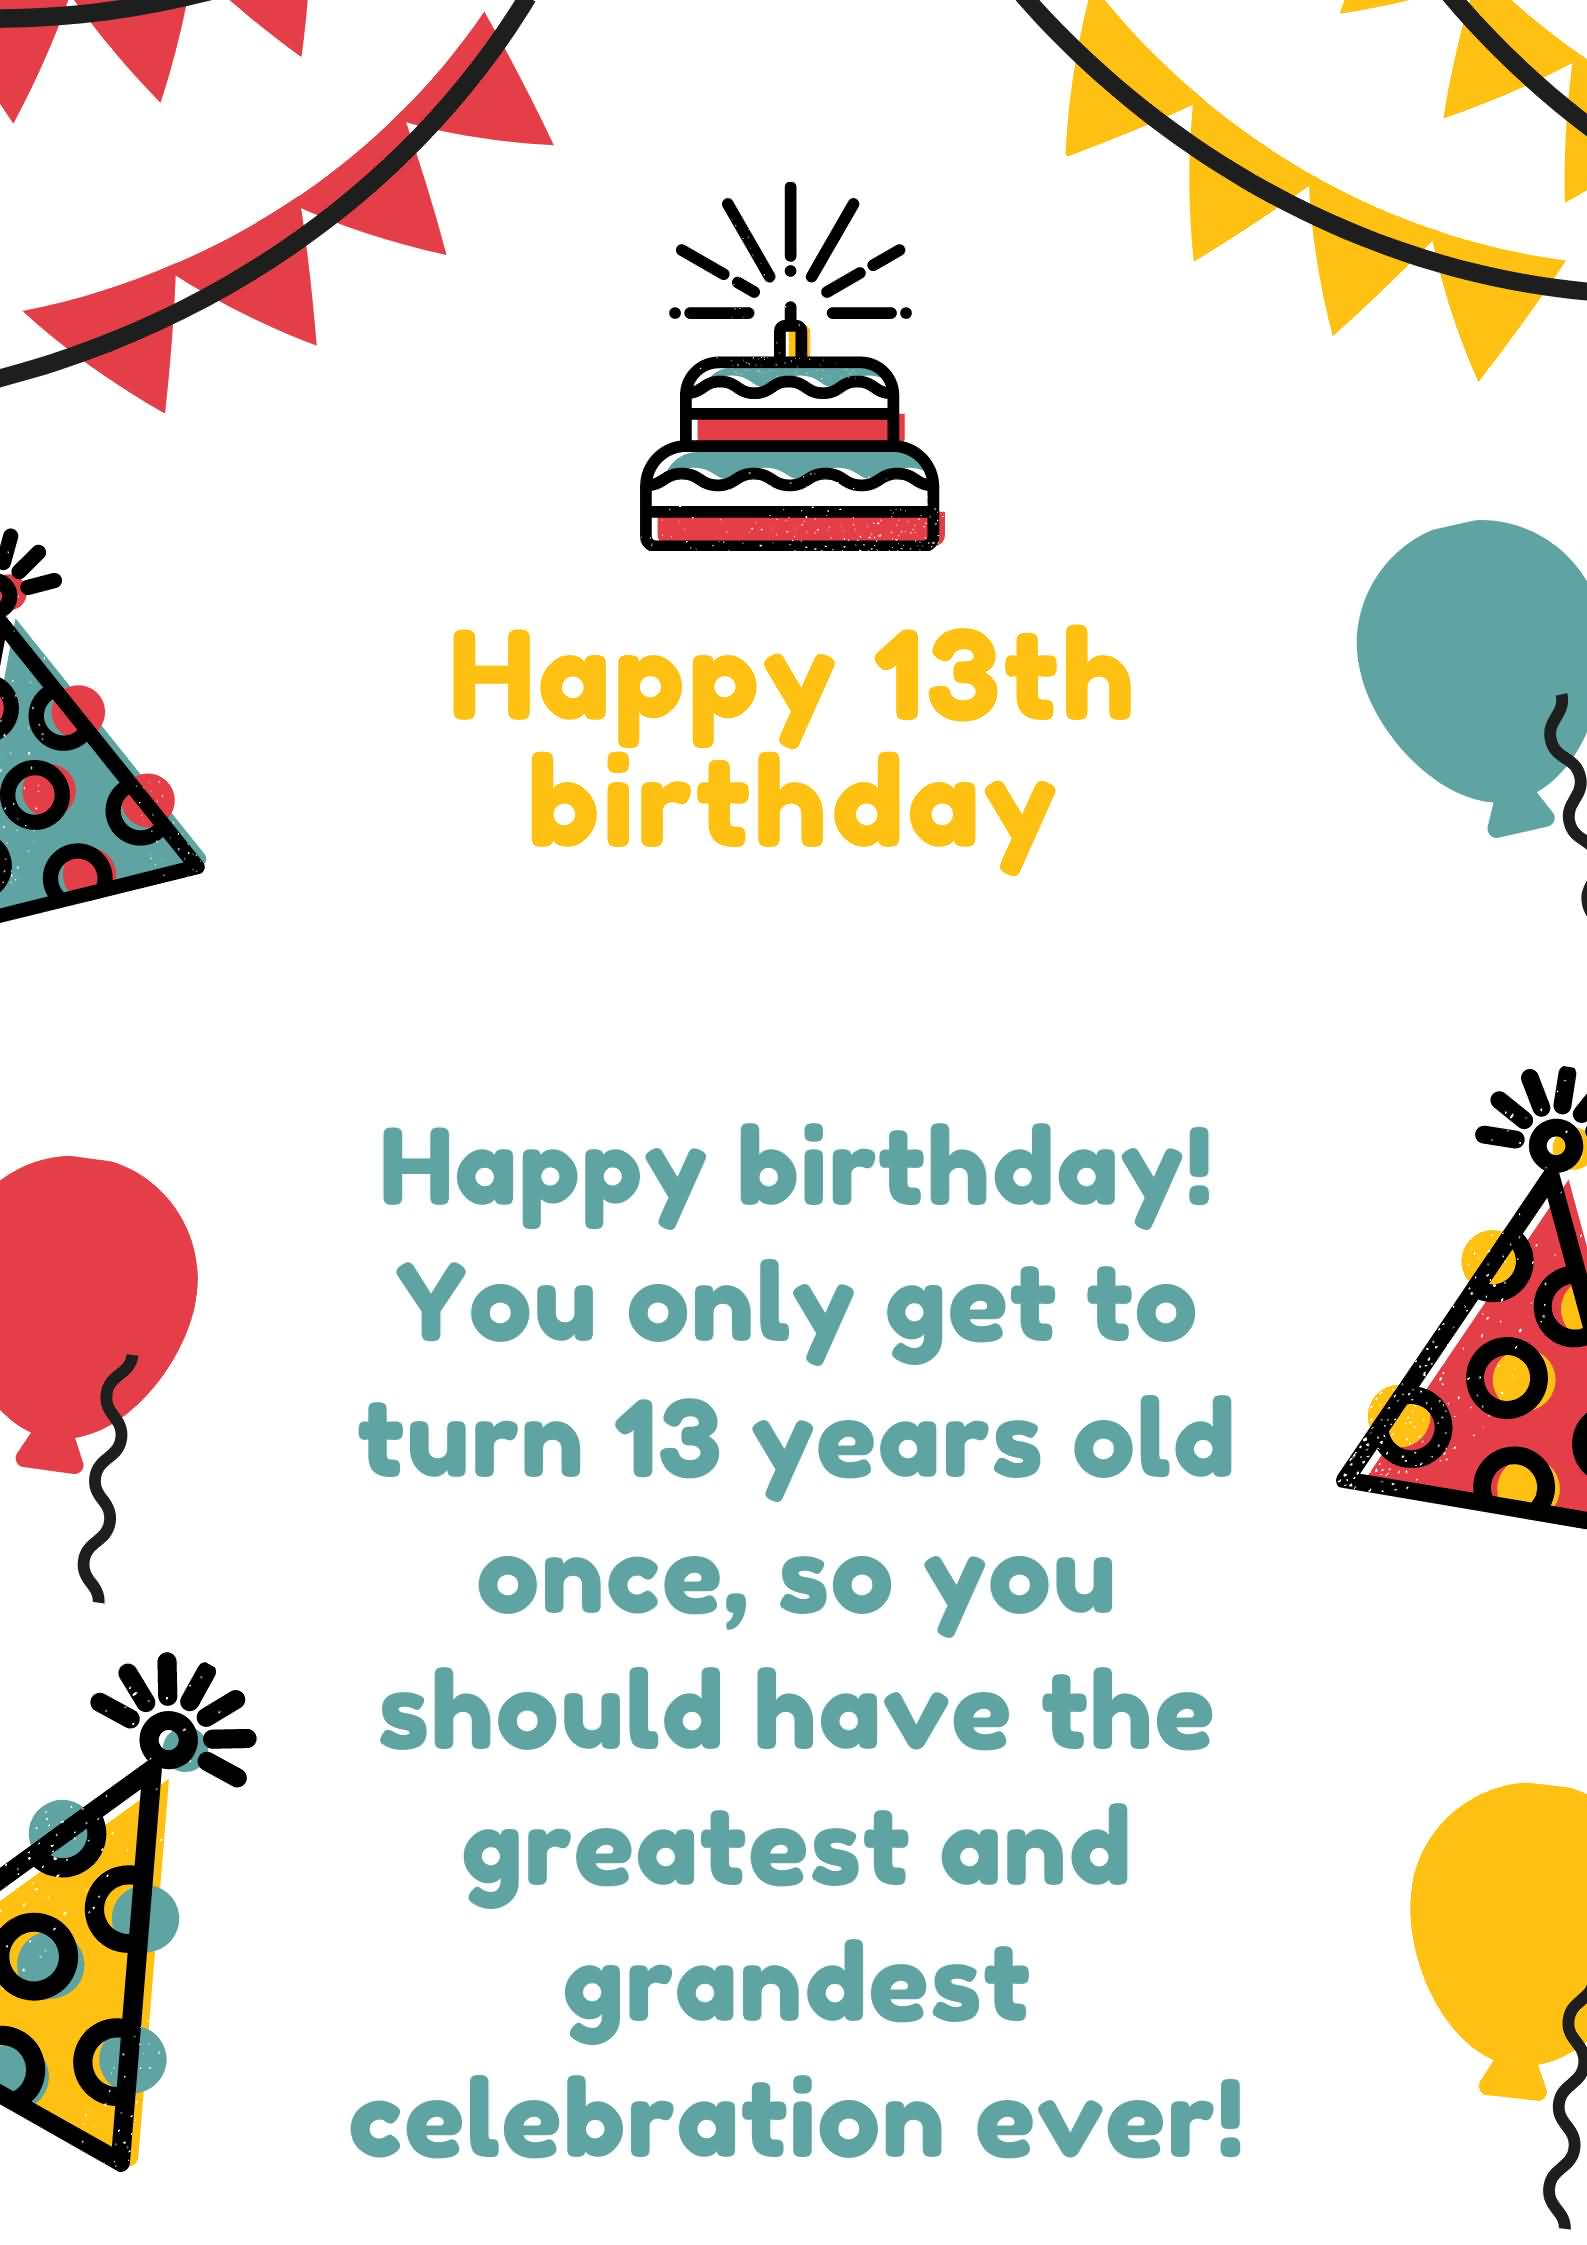 Mind Blowing Happy 13th Birthday Greeting For Sharing